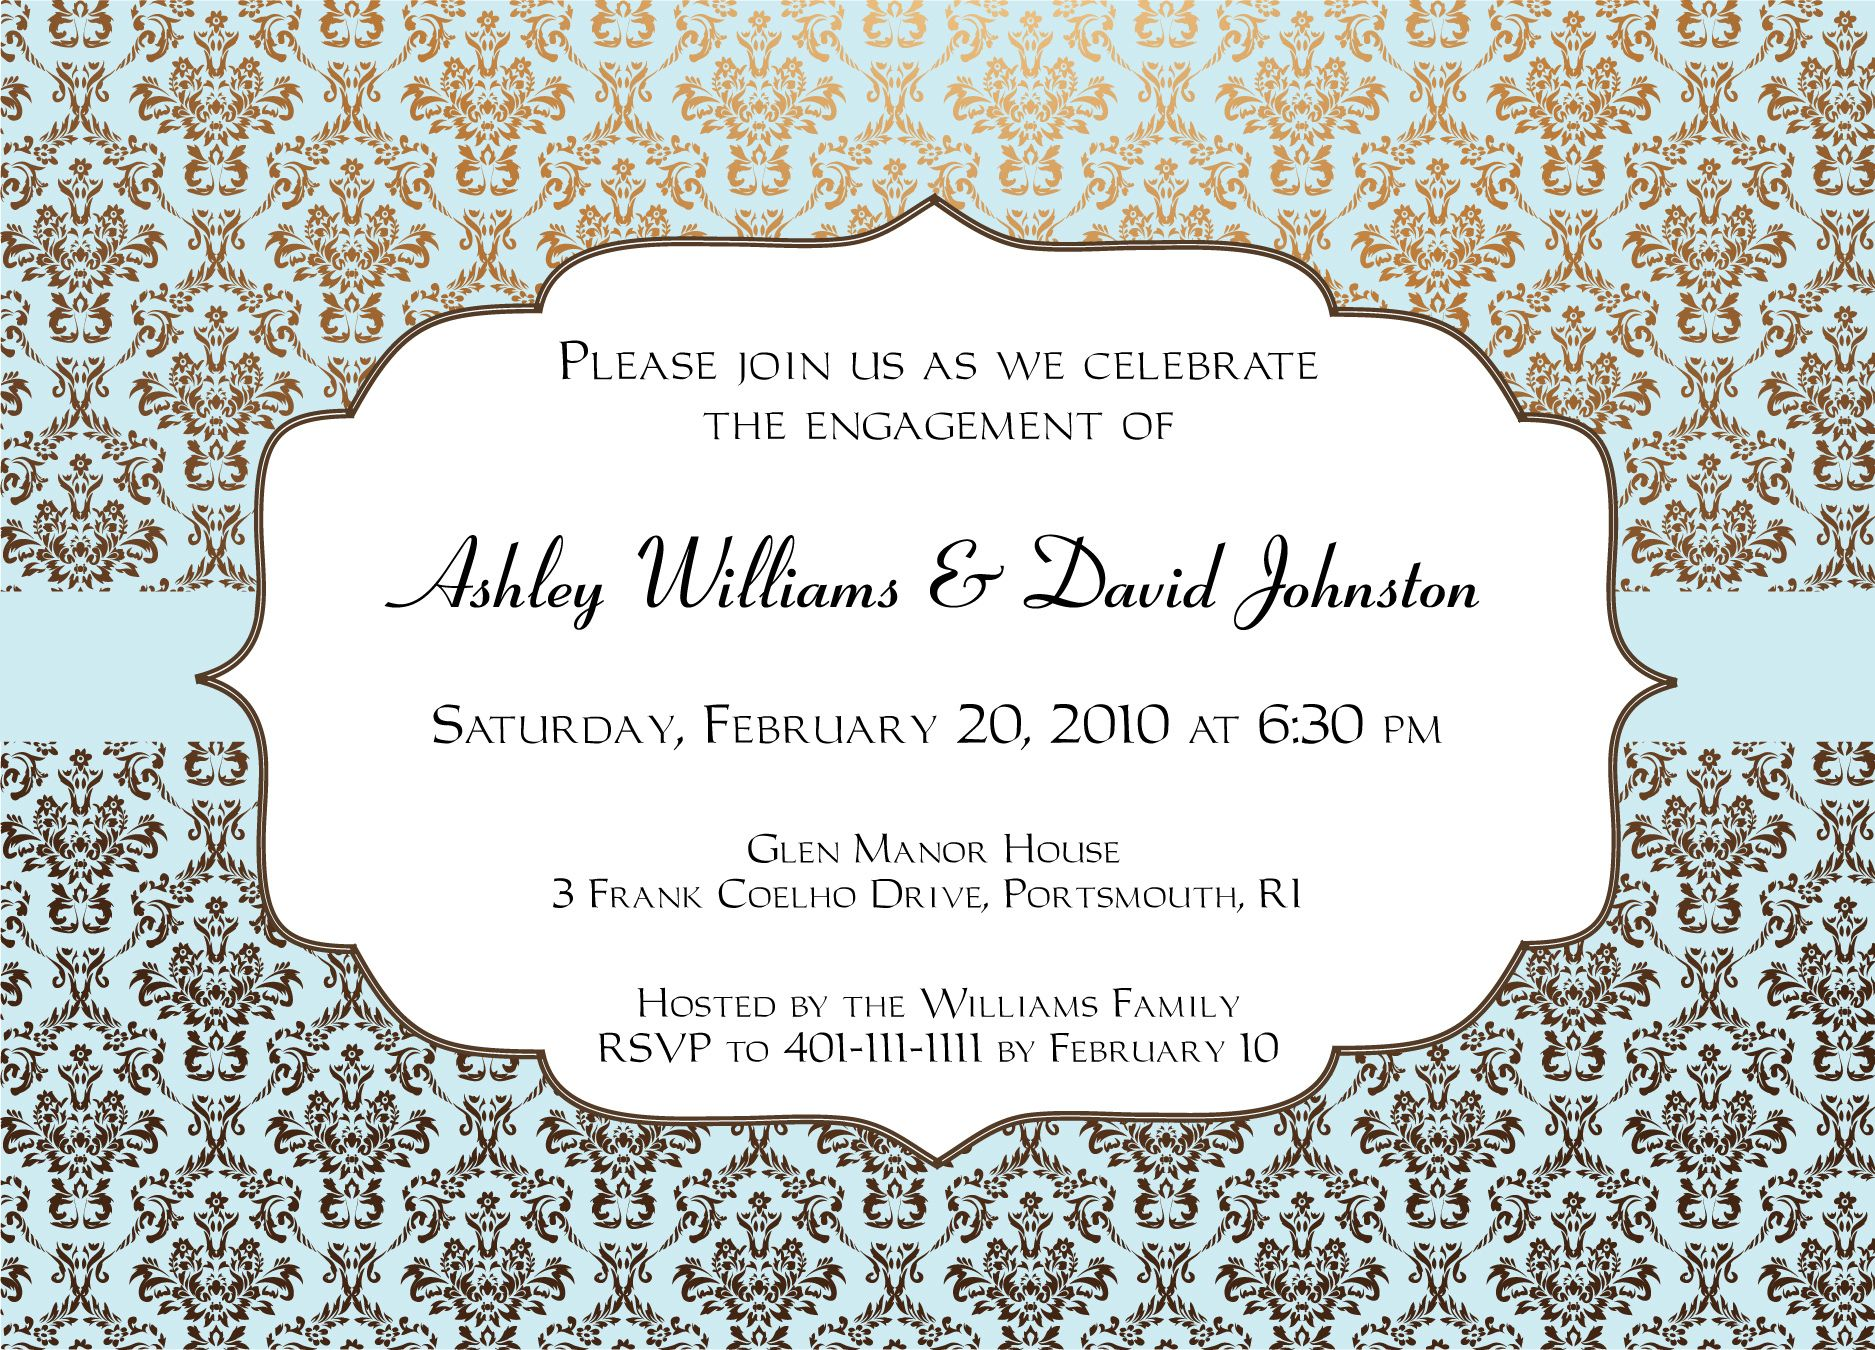 Engagement Party Invitations Templates | ... Invitation Templates  Engagement Invitation Design Invitation Templates  Invitation Free Templates